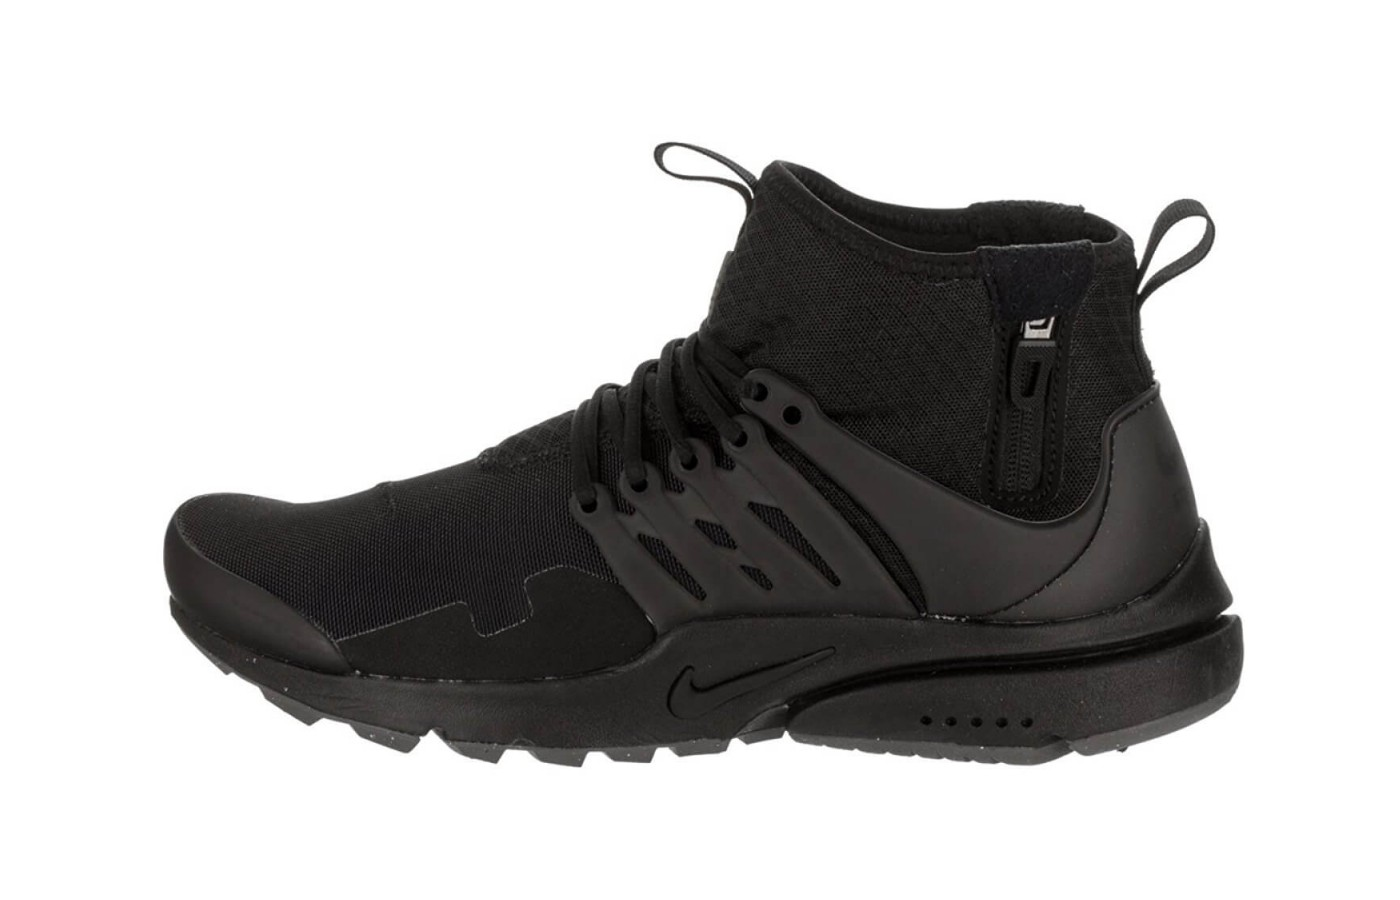 lowest price 7d9aa 3b17c A view of the lateral side of the Nike Air Presto Mid Utility.